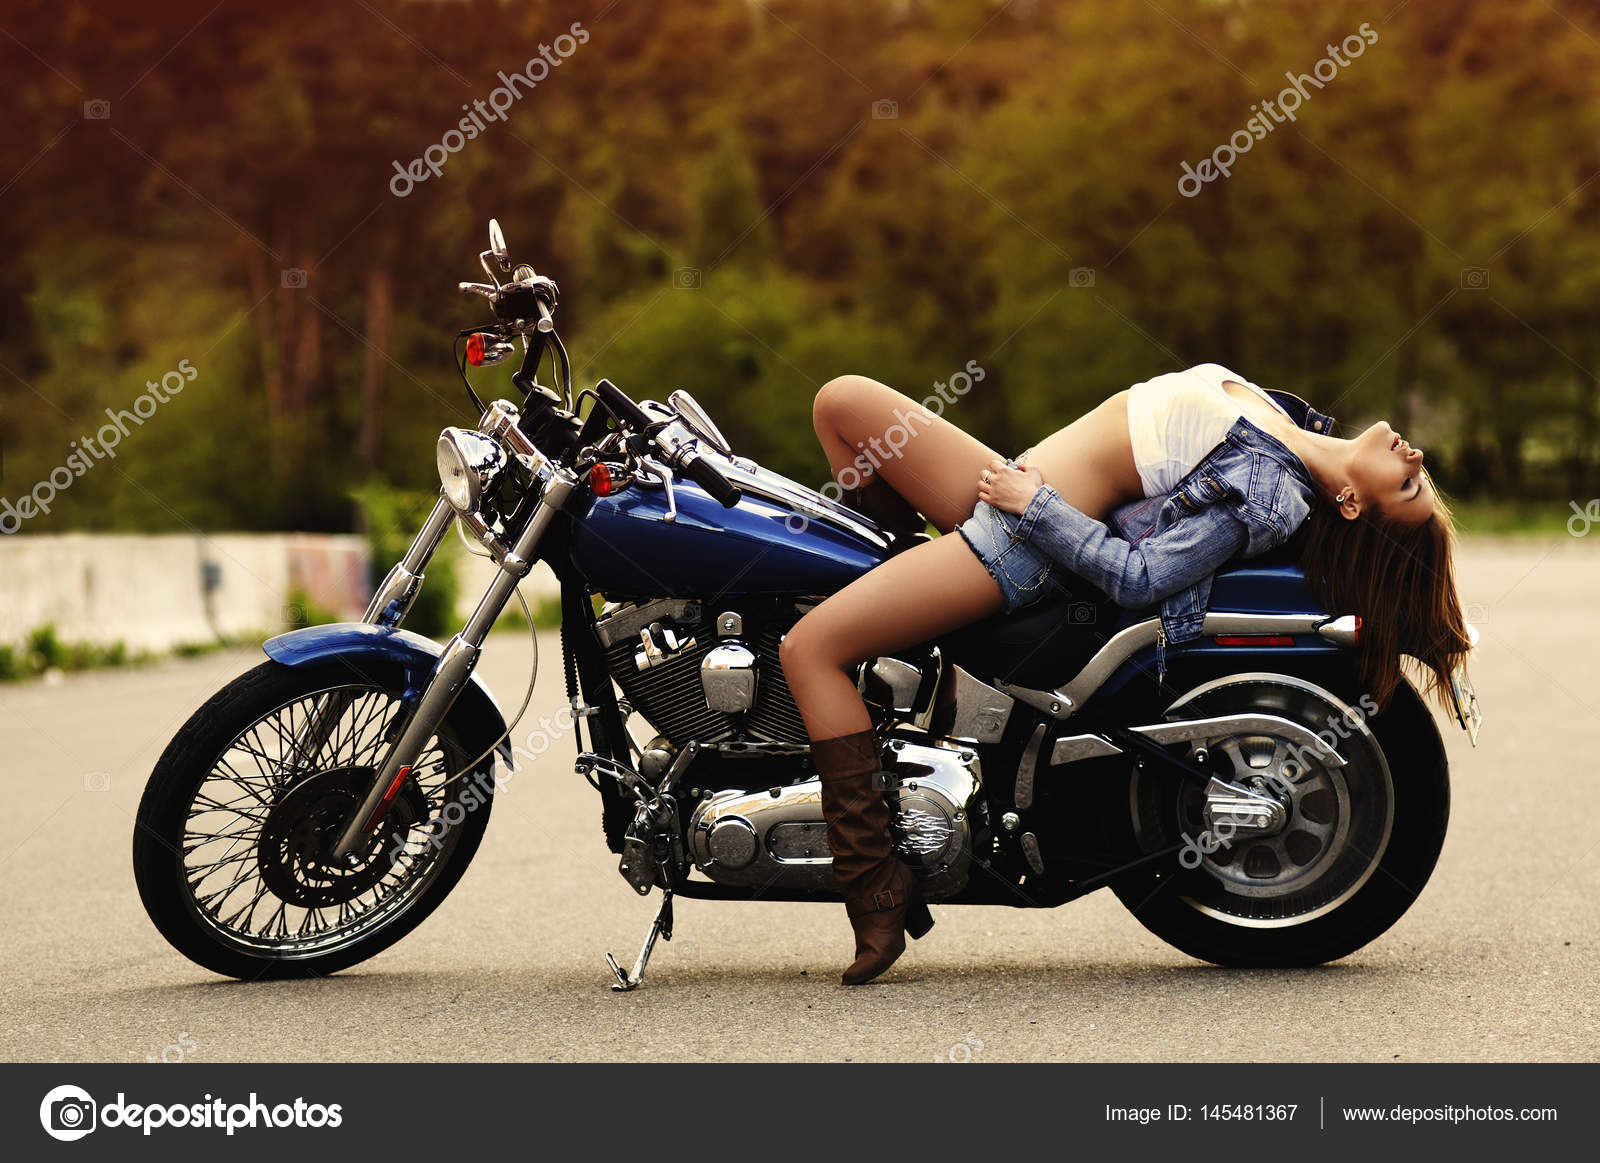 a motorcycle shooting  A beautiful slender young woman (girl) lies on a motorcycle against ...